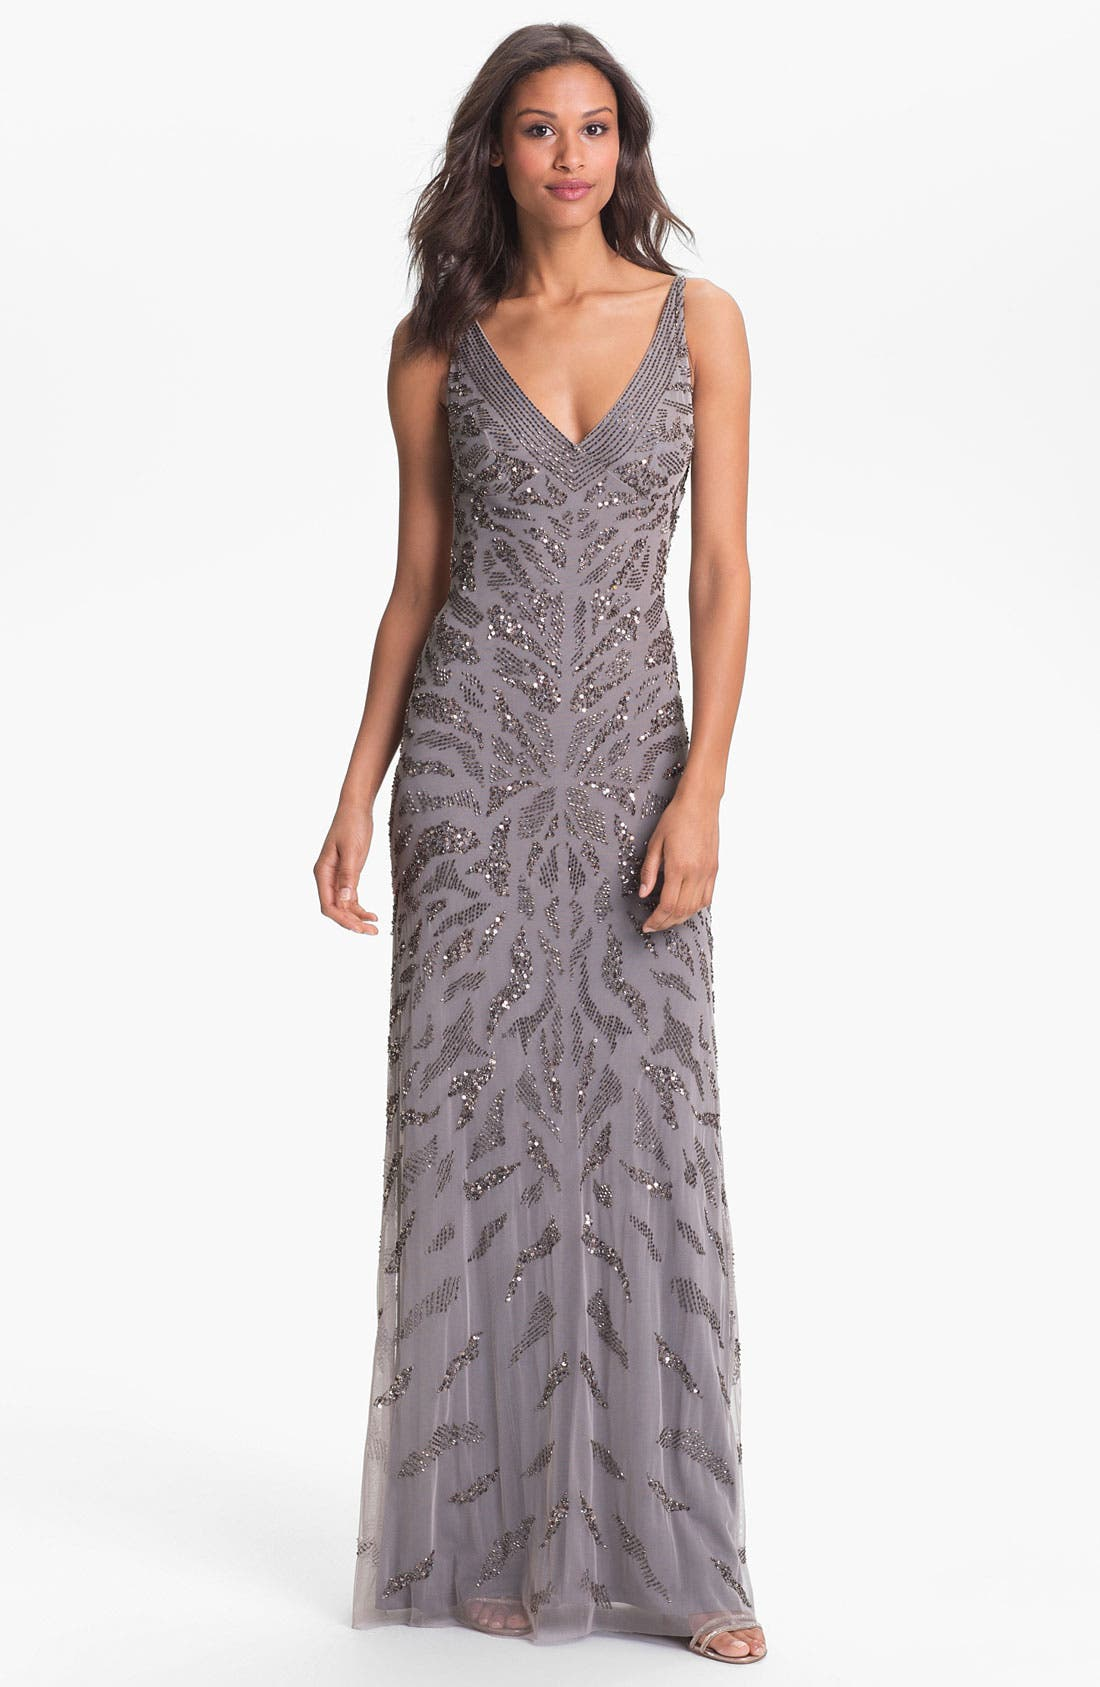 Alternate Image 1 Selected - Adrianna Papell Embellished V-Neck Mesh Gown